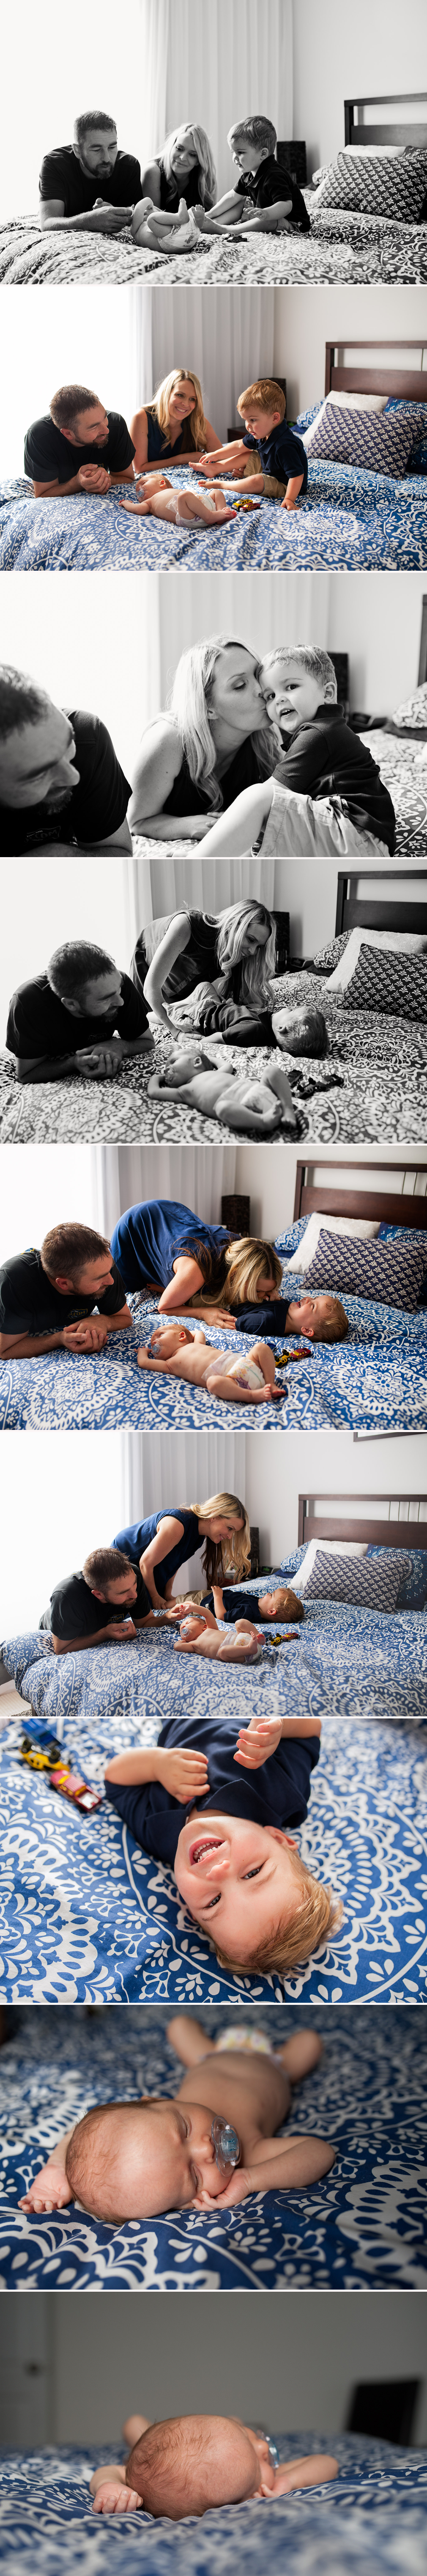 Newborn-baby-boy-at-home-lifestyle-photography-3